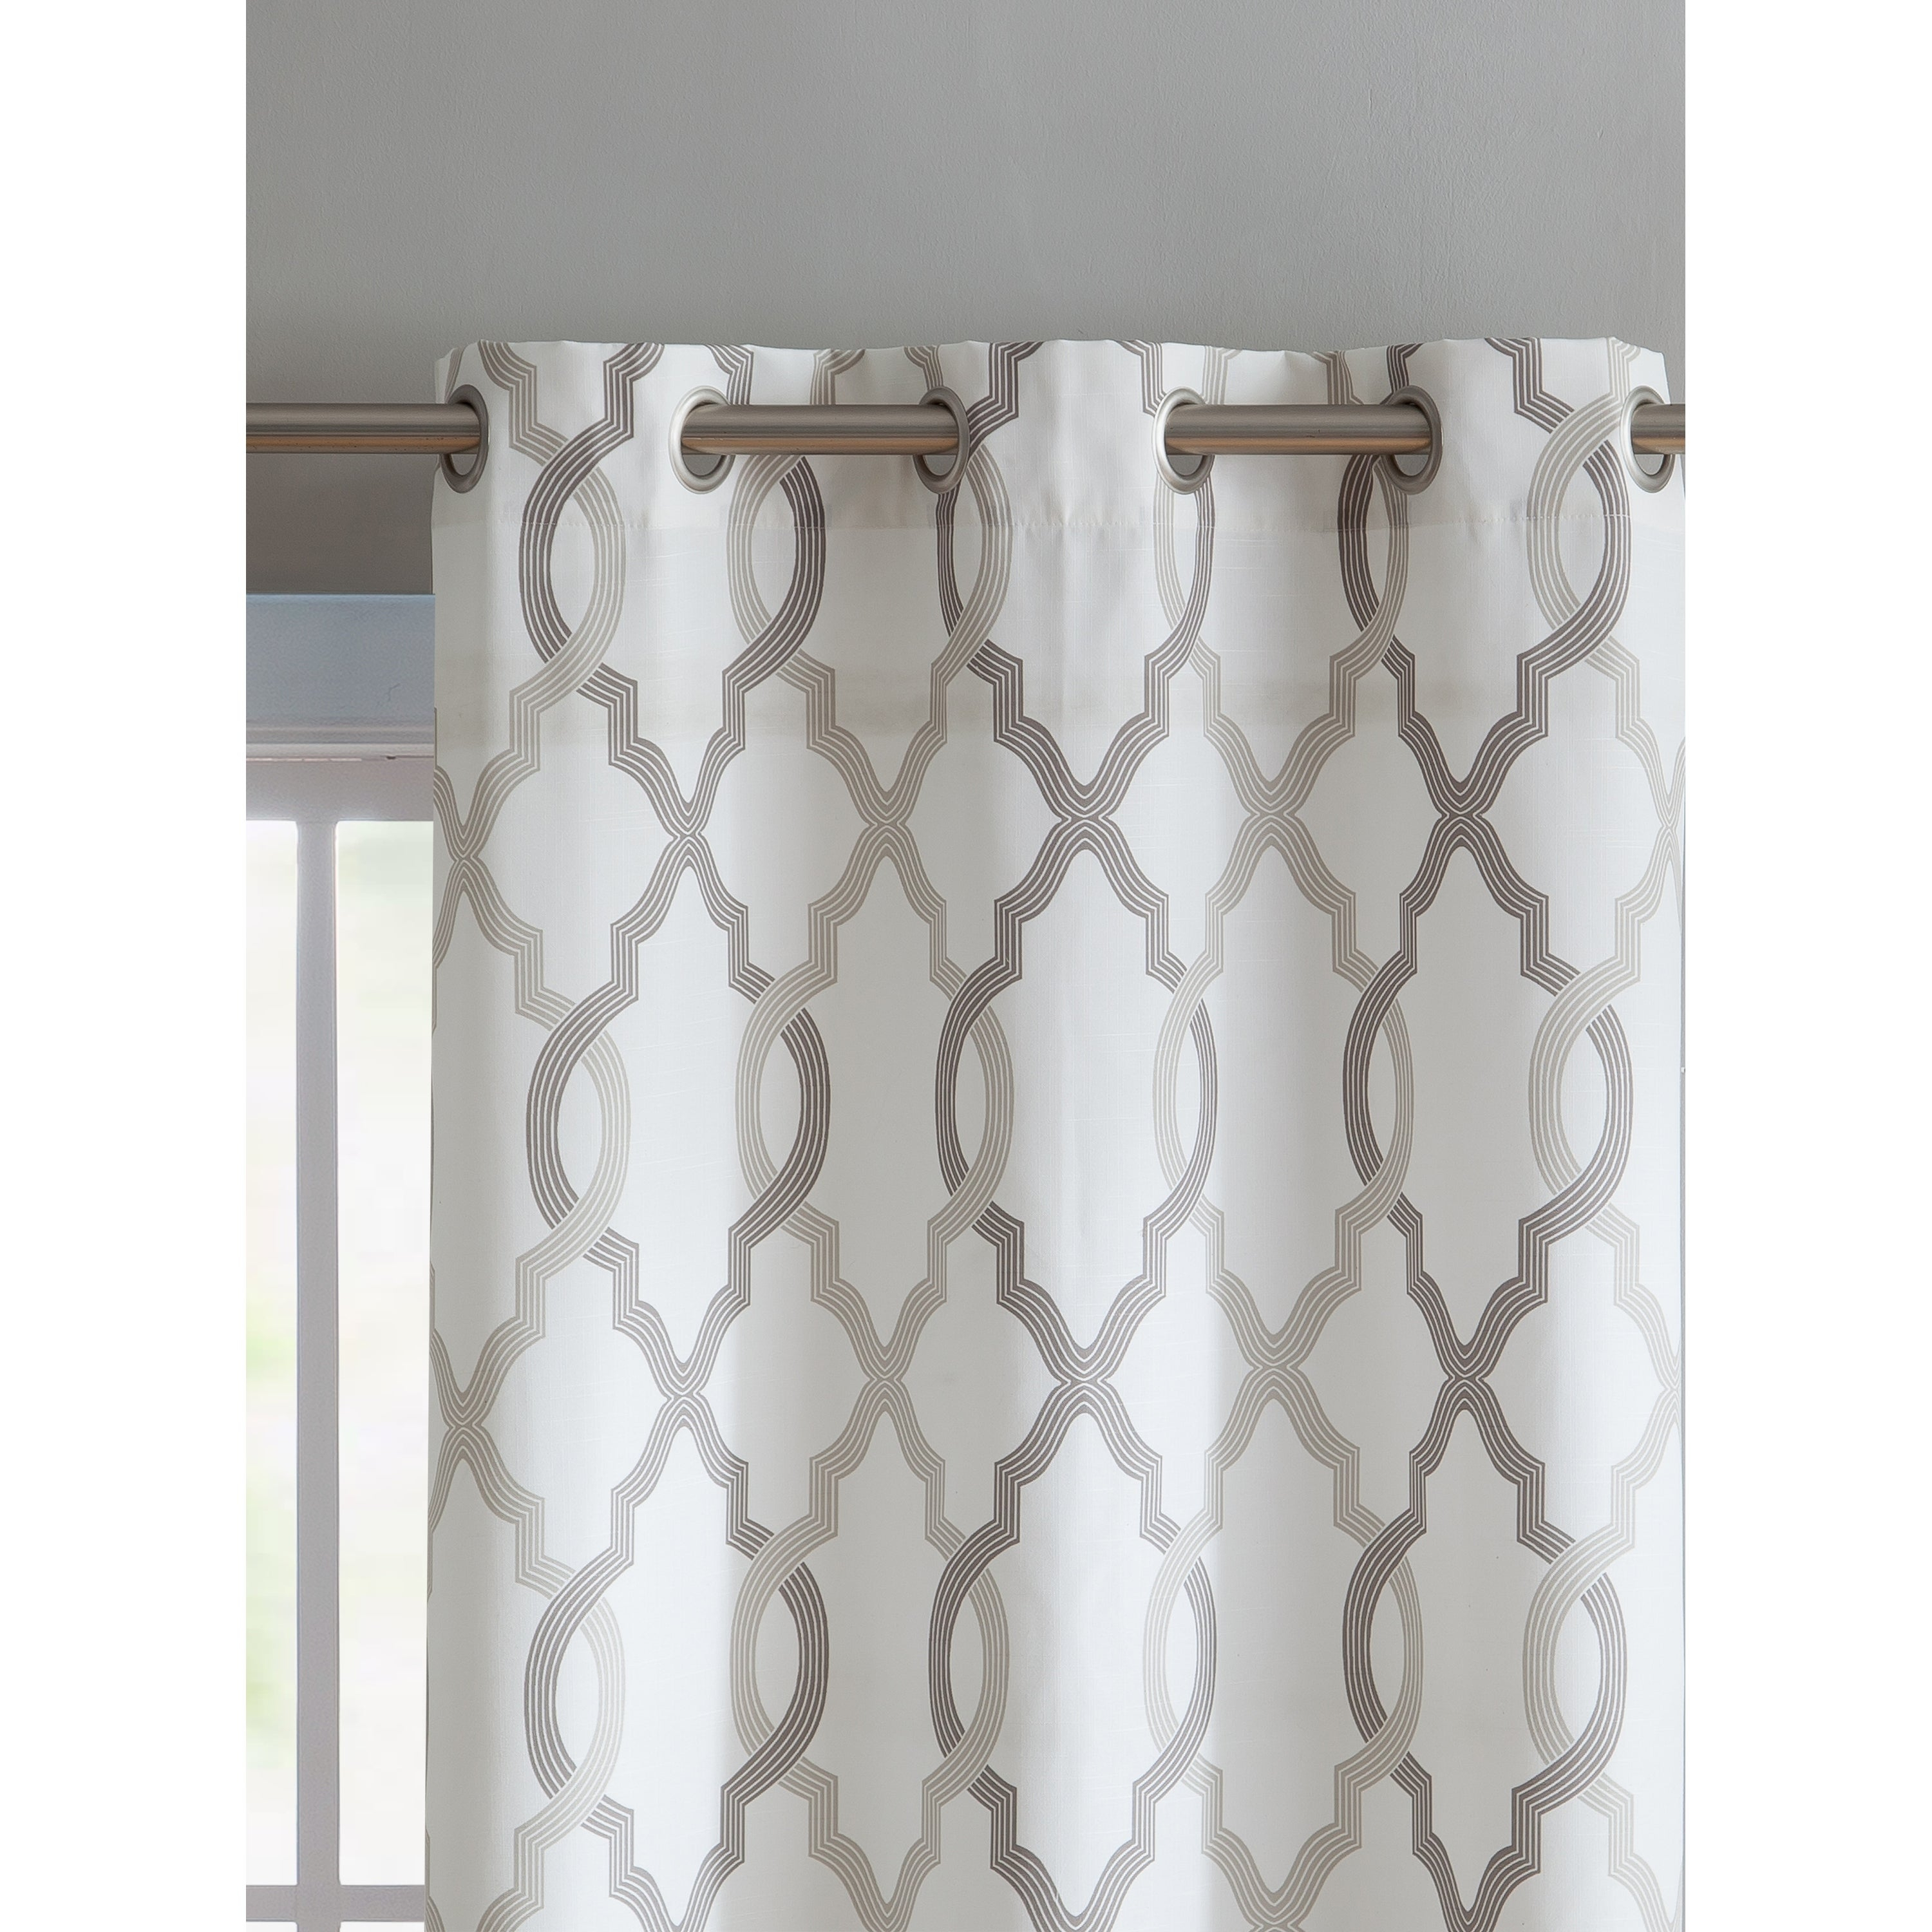 Vcny Home Caldwell Curtain Panel Pair Regarding Caldwell Curtain Panel Pairs (View 18 of 20)